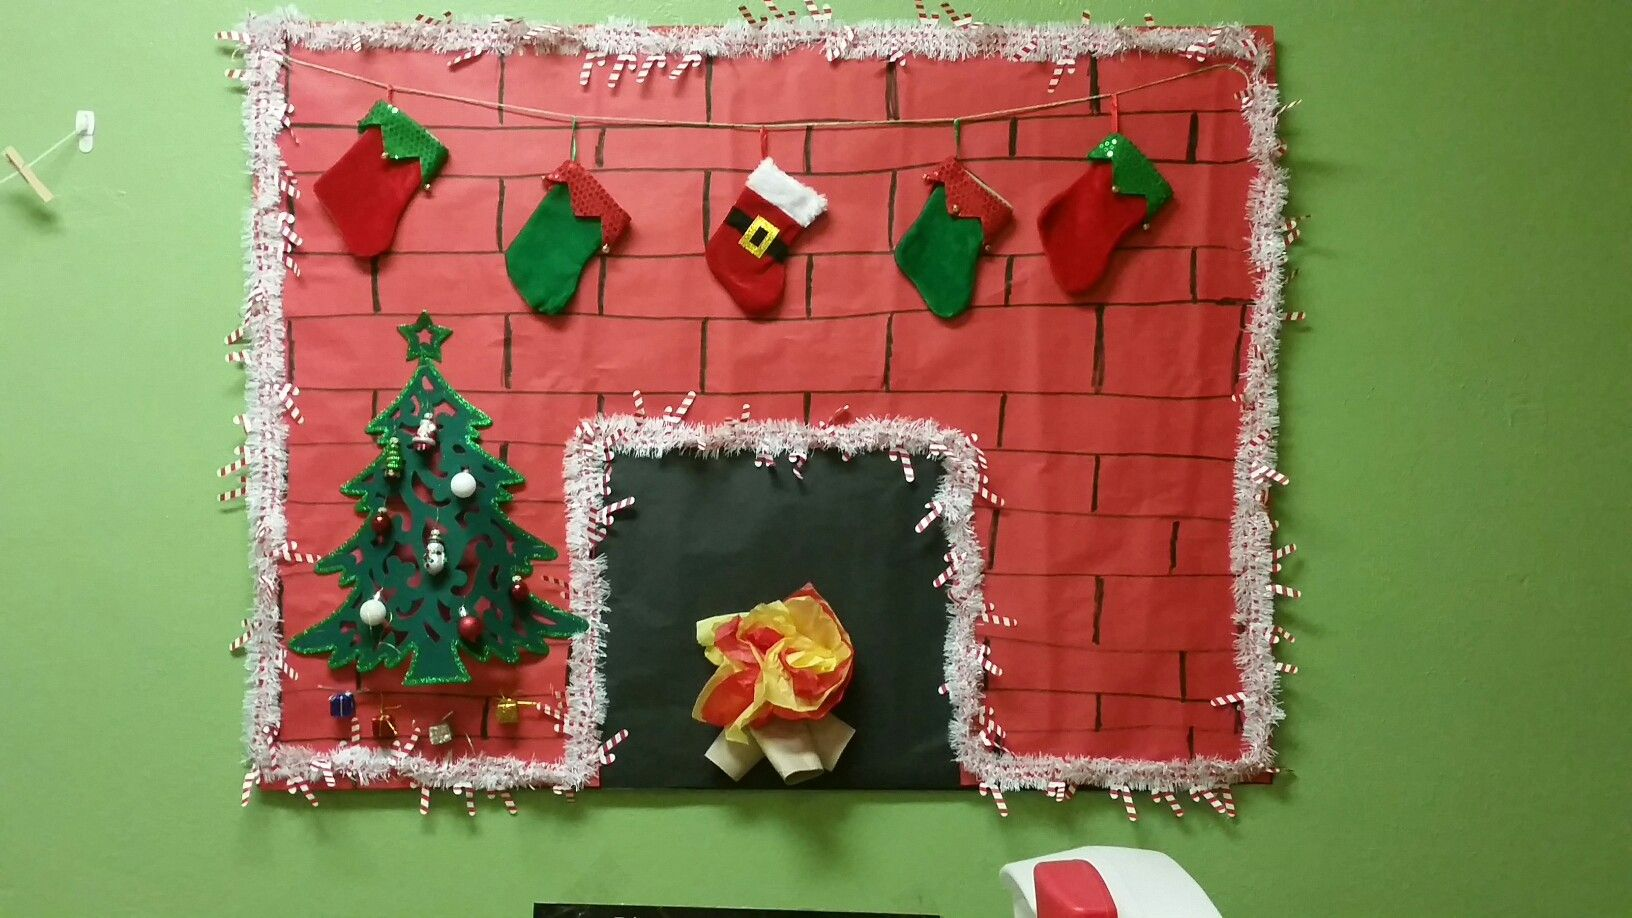 Christmas Fireplace Bulletin Board 3d Felt Tree With Mini Ornaments Fire Made Out Of Tissue Paper And Toilet Paper Christmas Classroom Mini Ornaments Crafts